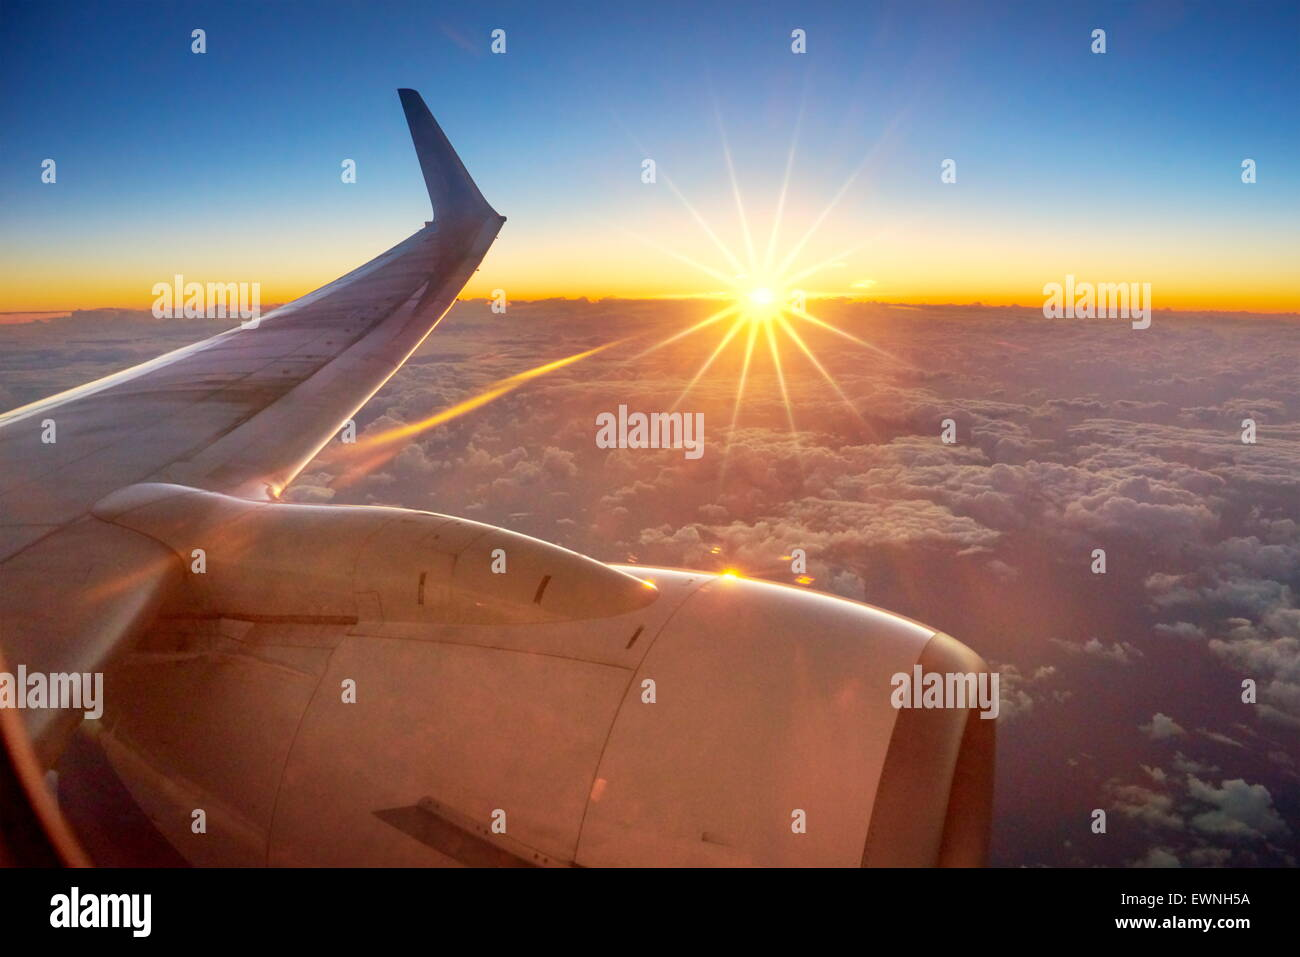 Sunset view from airplane window Stock Photo